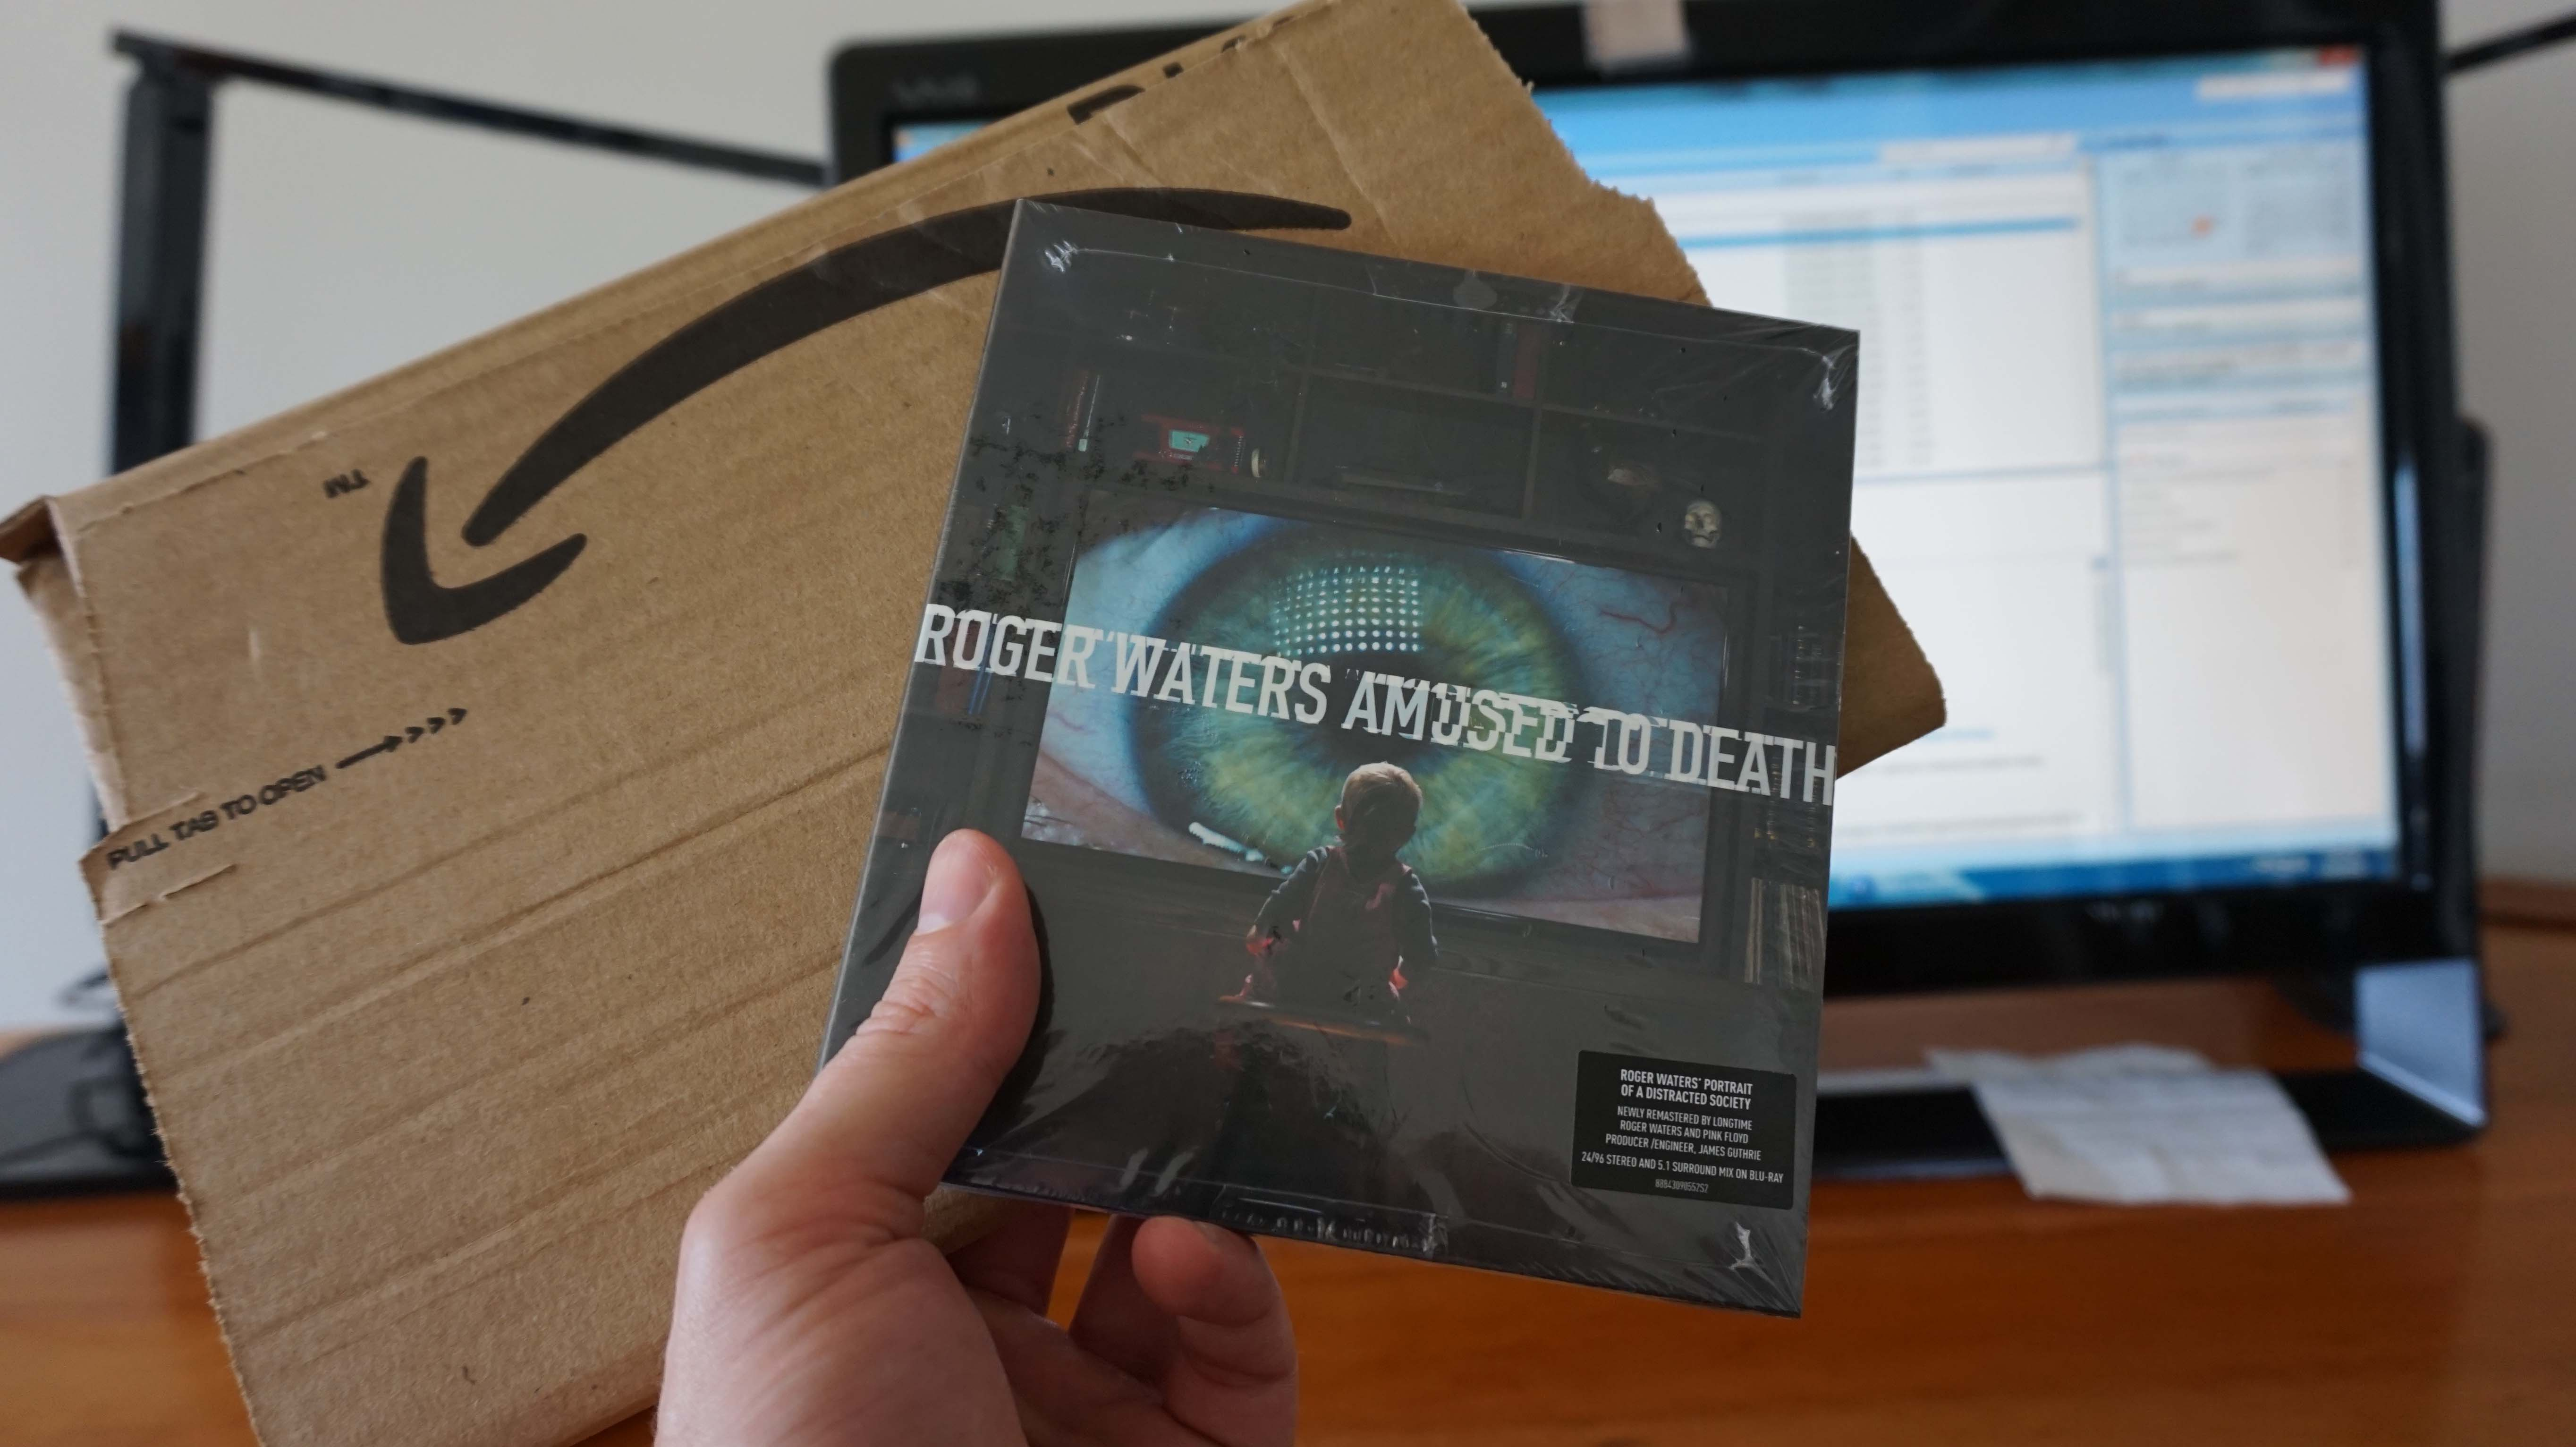 Roger Waters Amused to Death arrives